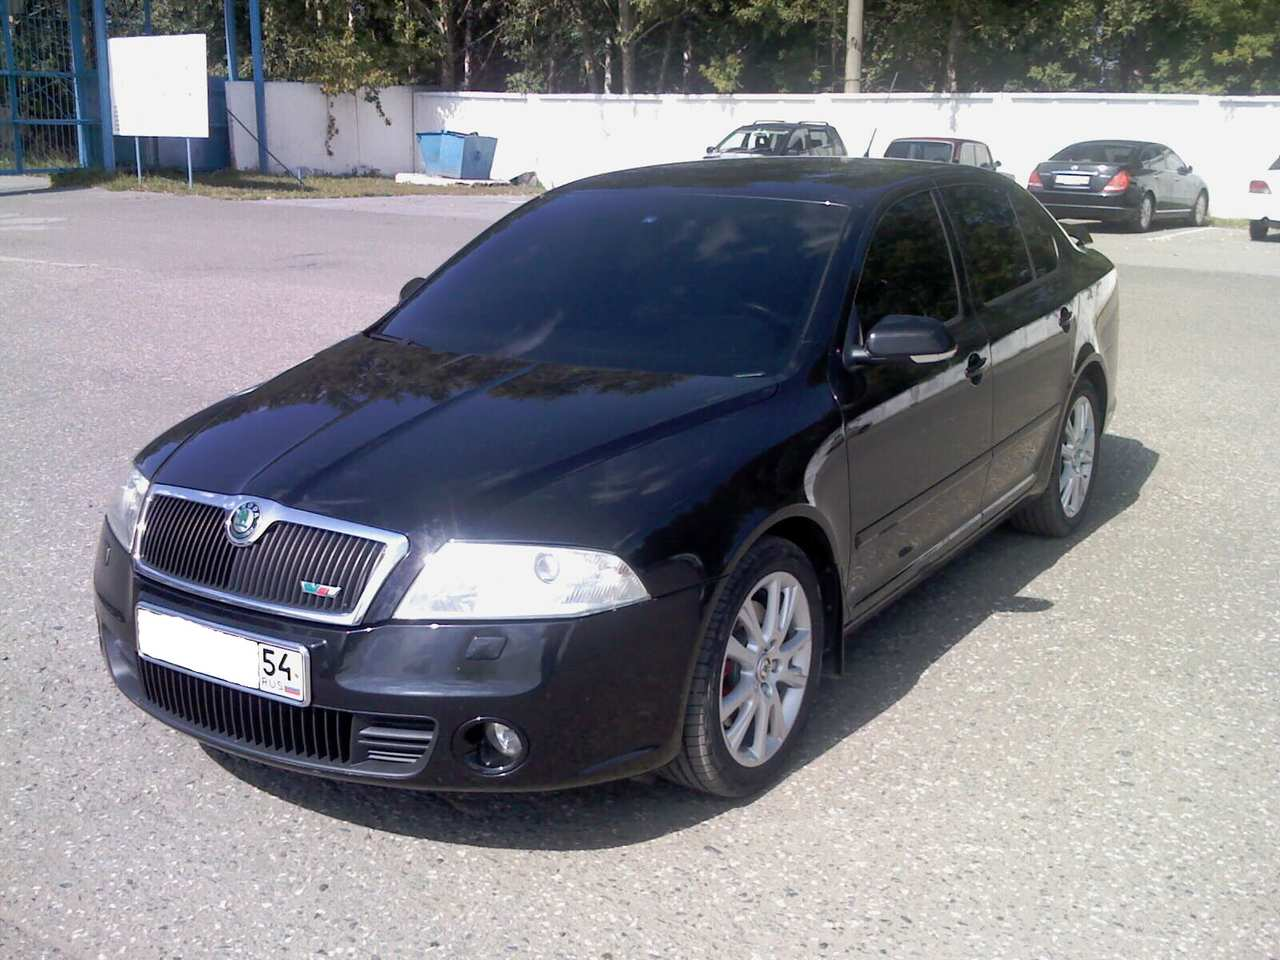 ... of deals on second hand Skoda Octavia 2006 Cars from trusted